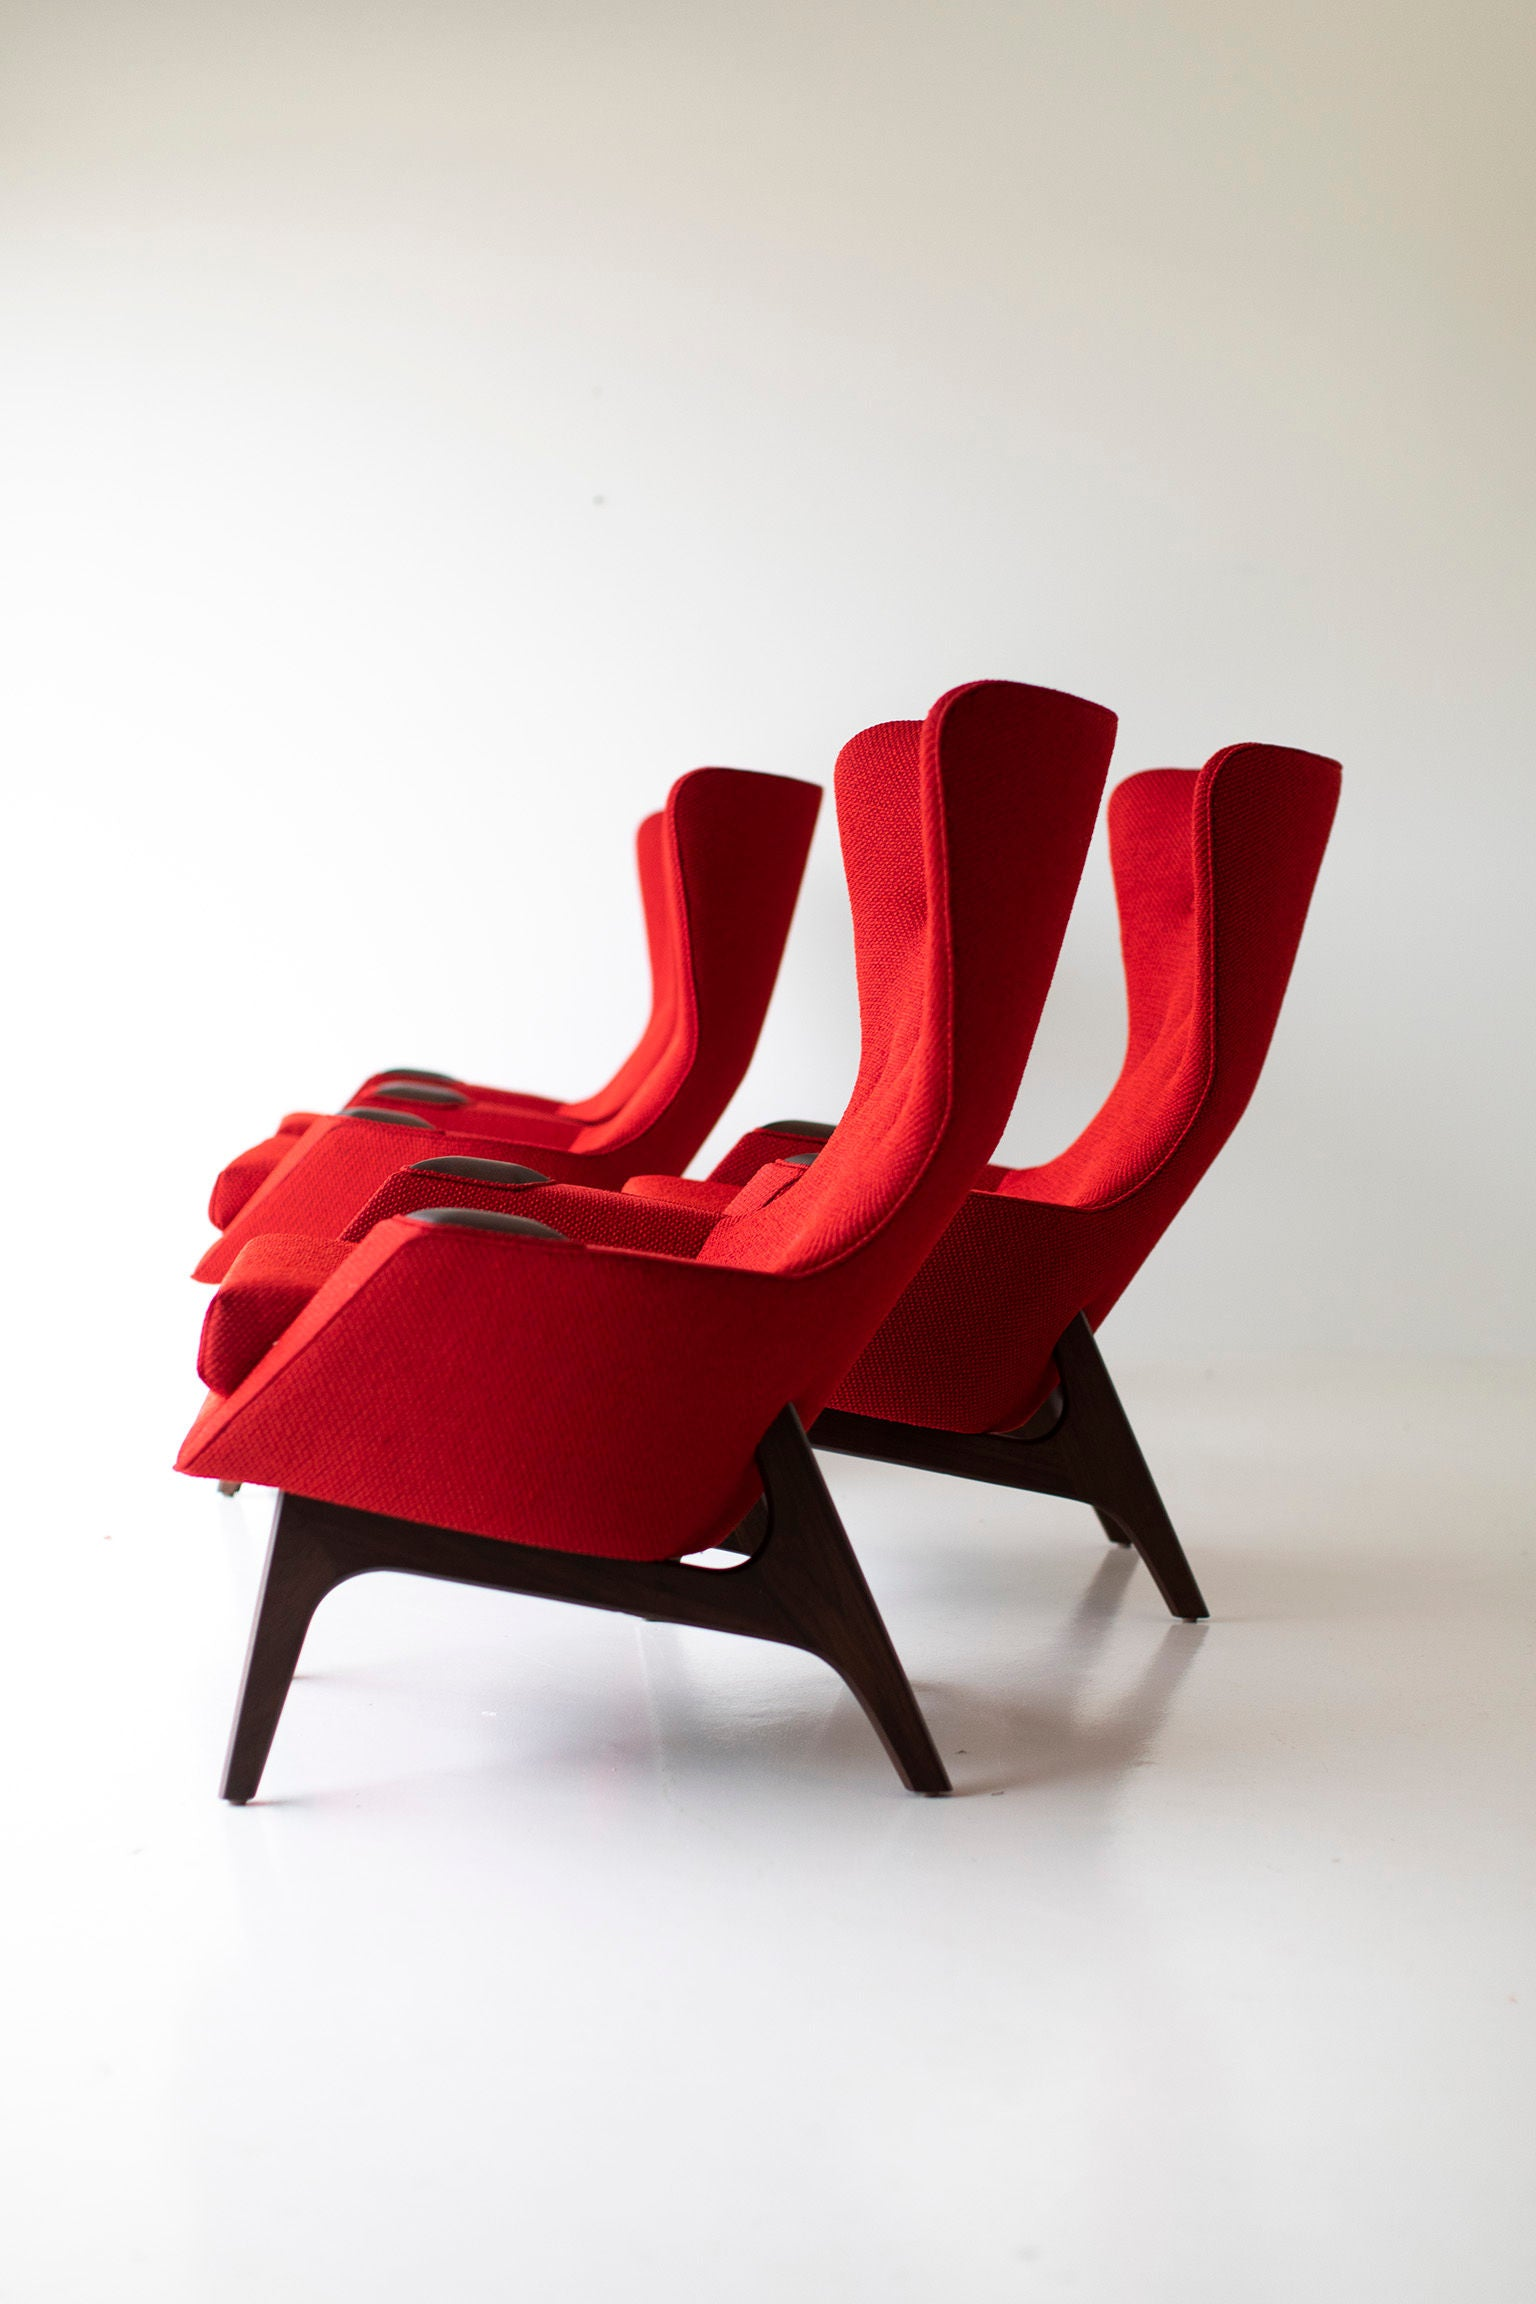 0T3A8922-Red-Wing-Chairs-07